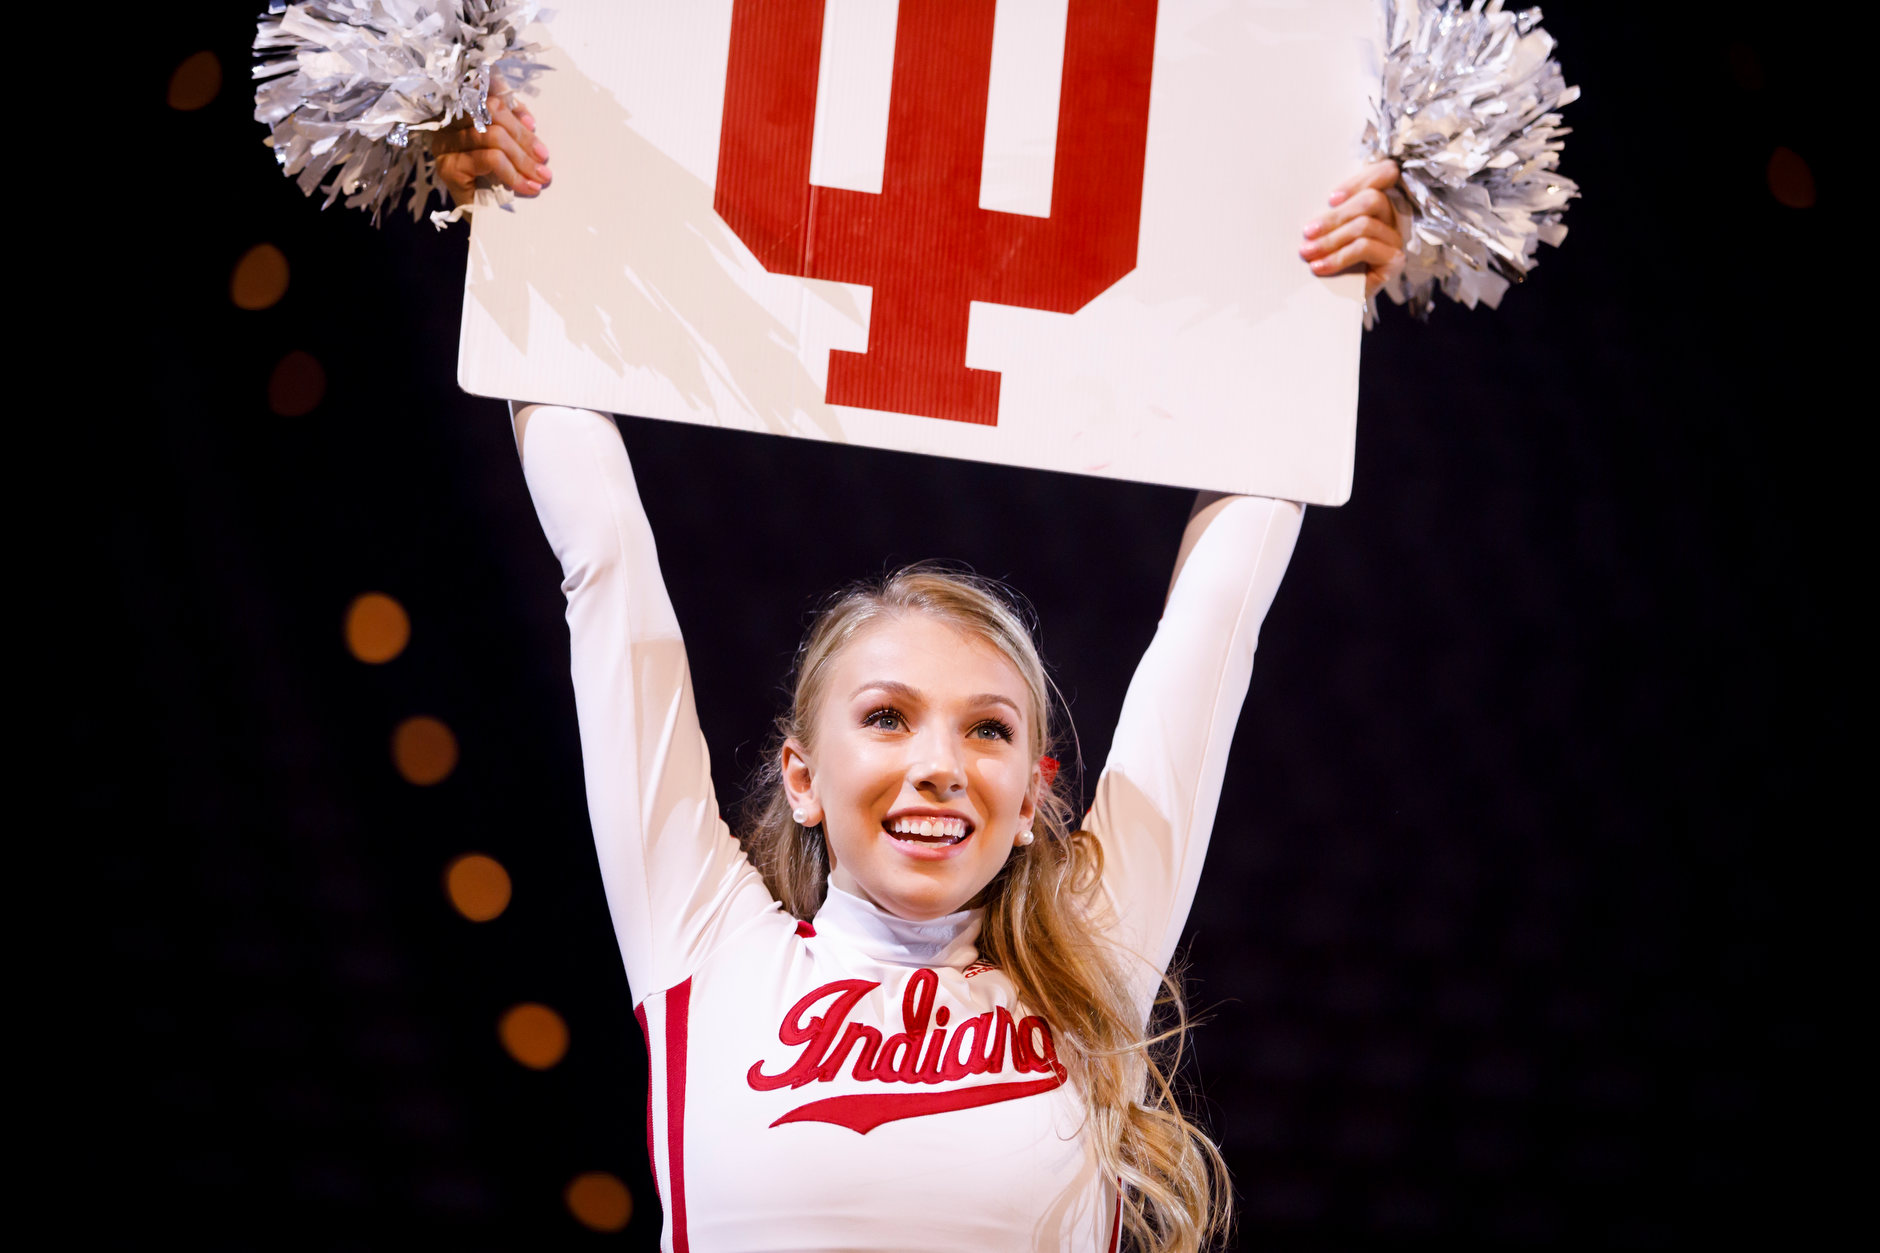 Indiana University cheerleaders teach students a cheer during the Traditions and Spirit of IU at Assembly Hall on Friday, Aug. 17, 2018. (James Brosher/IU Communications)